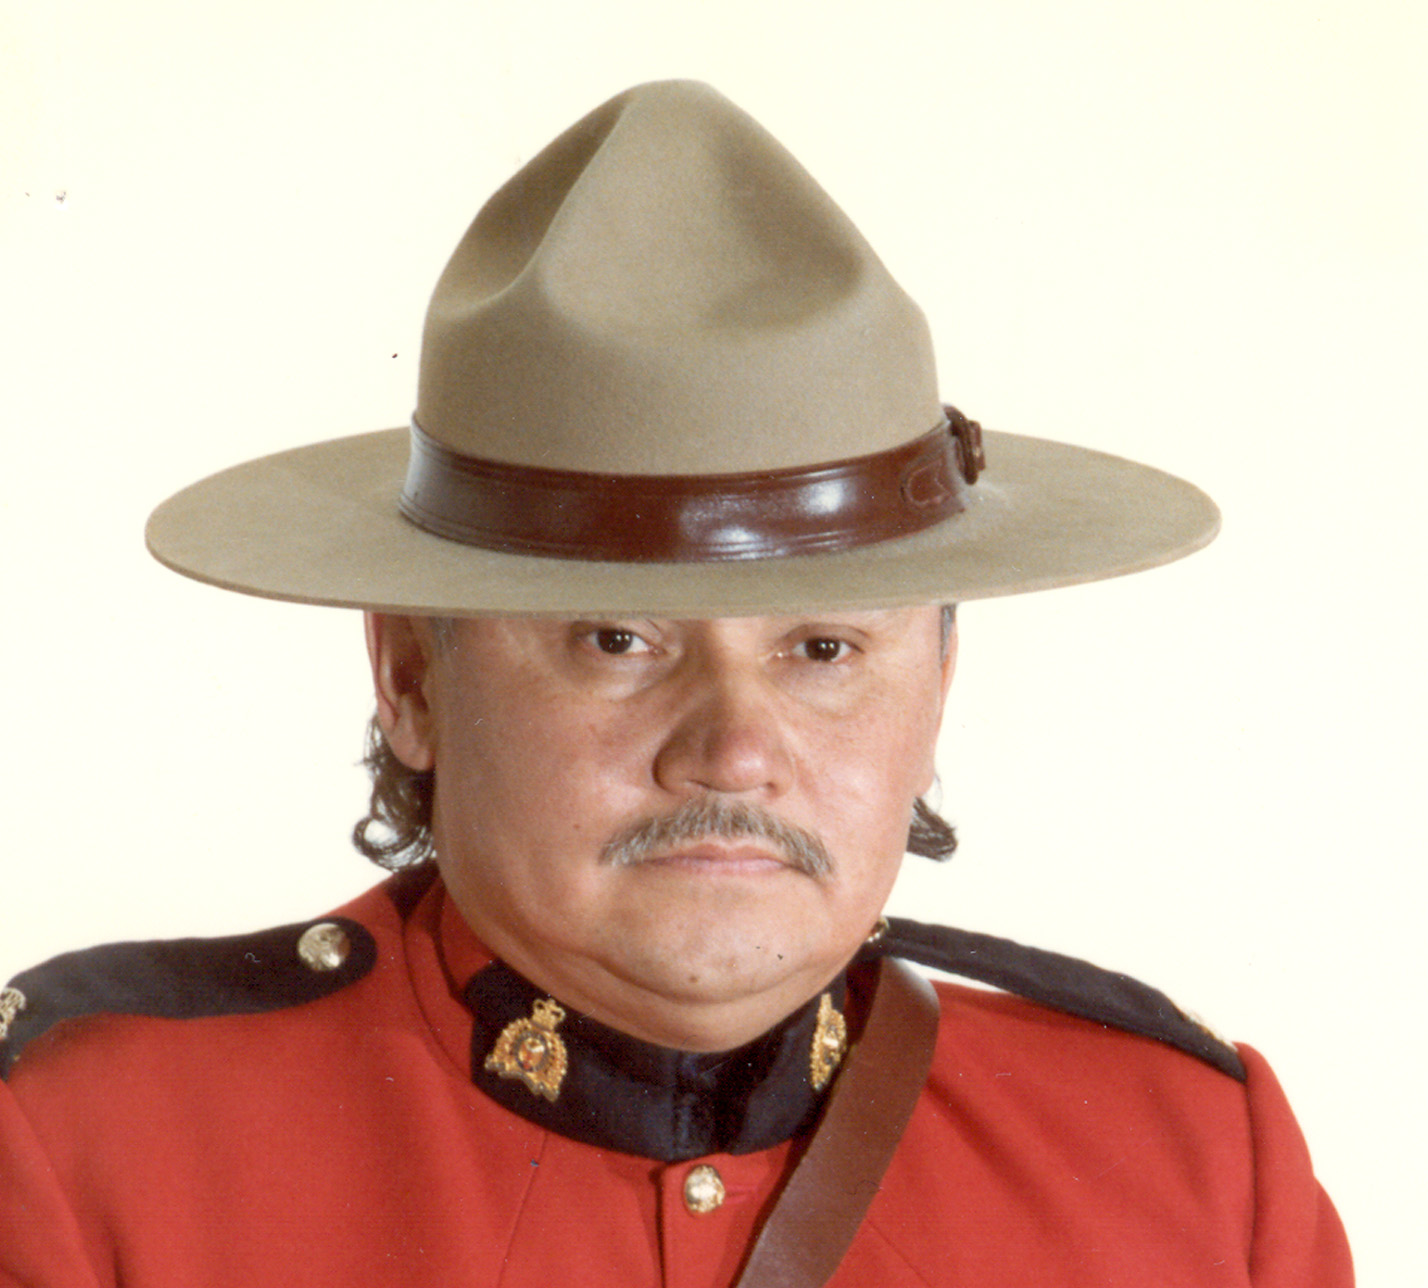 Constable Dennis Douglas Strongquill– © Her Majesty the Queen in Right of Canada as represented by the Royal Canadian Mounted Police